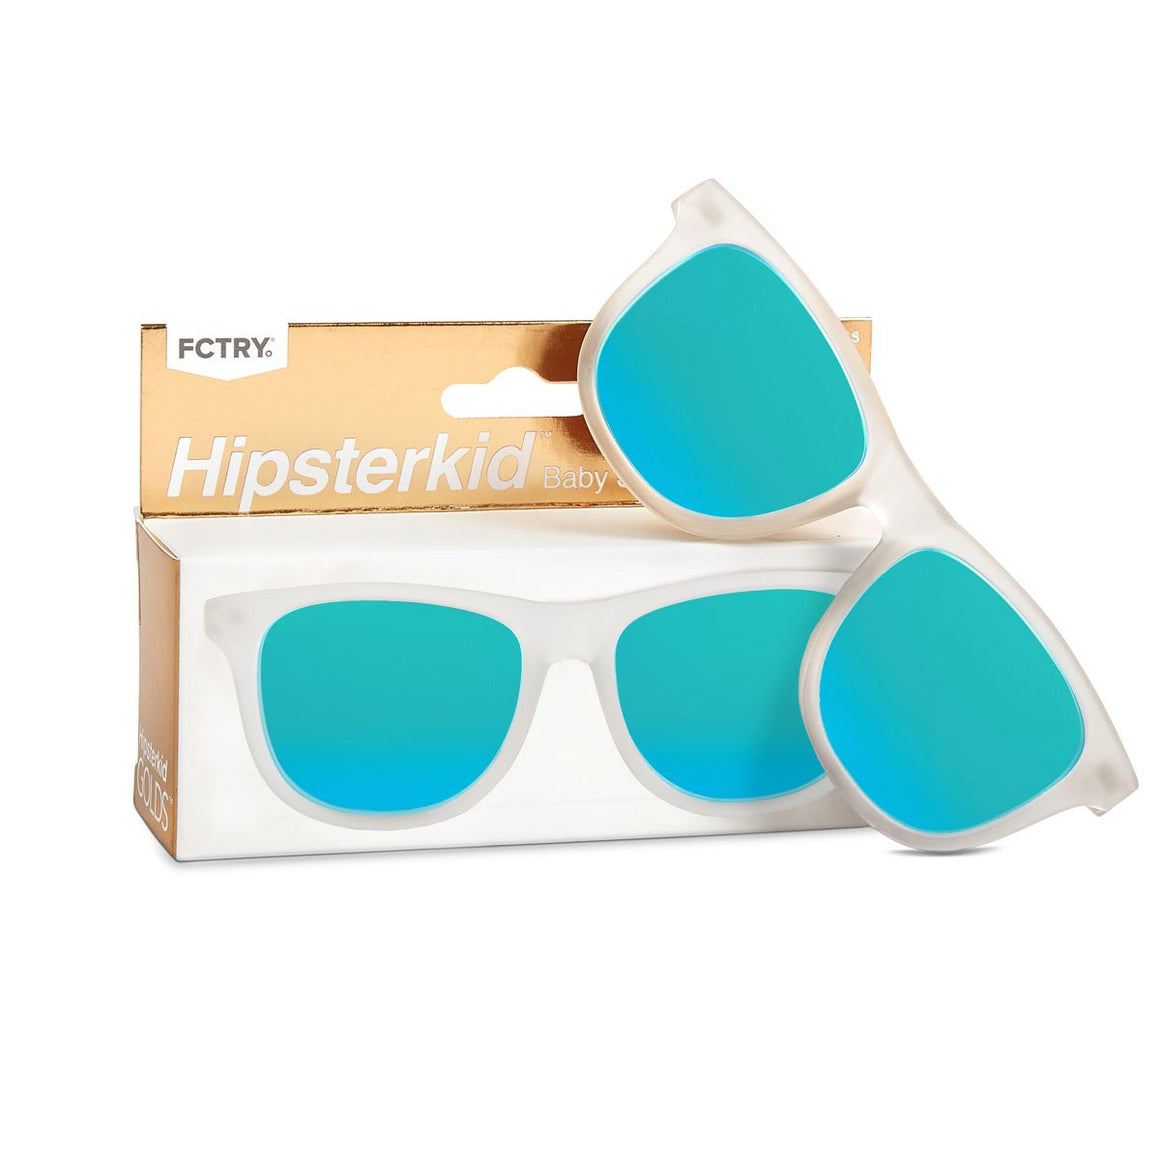 FCTRY: Polarized Baby Sunglasses, Golds - Frost